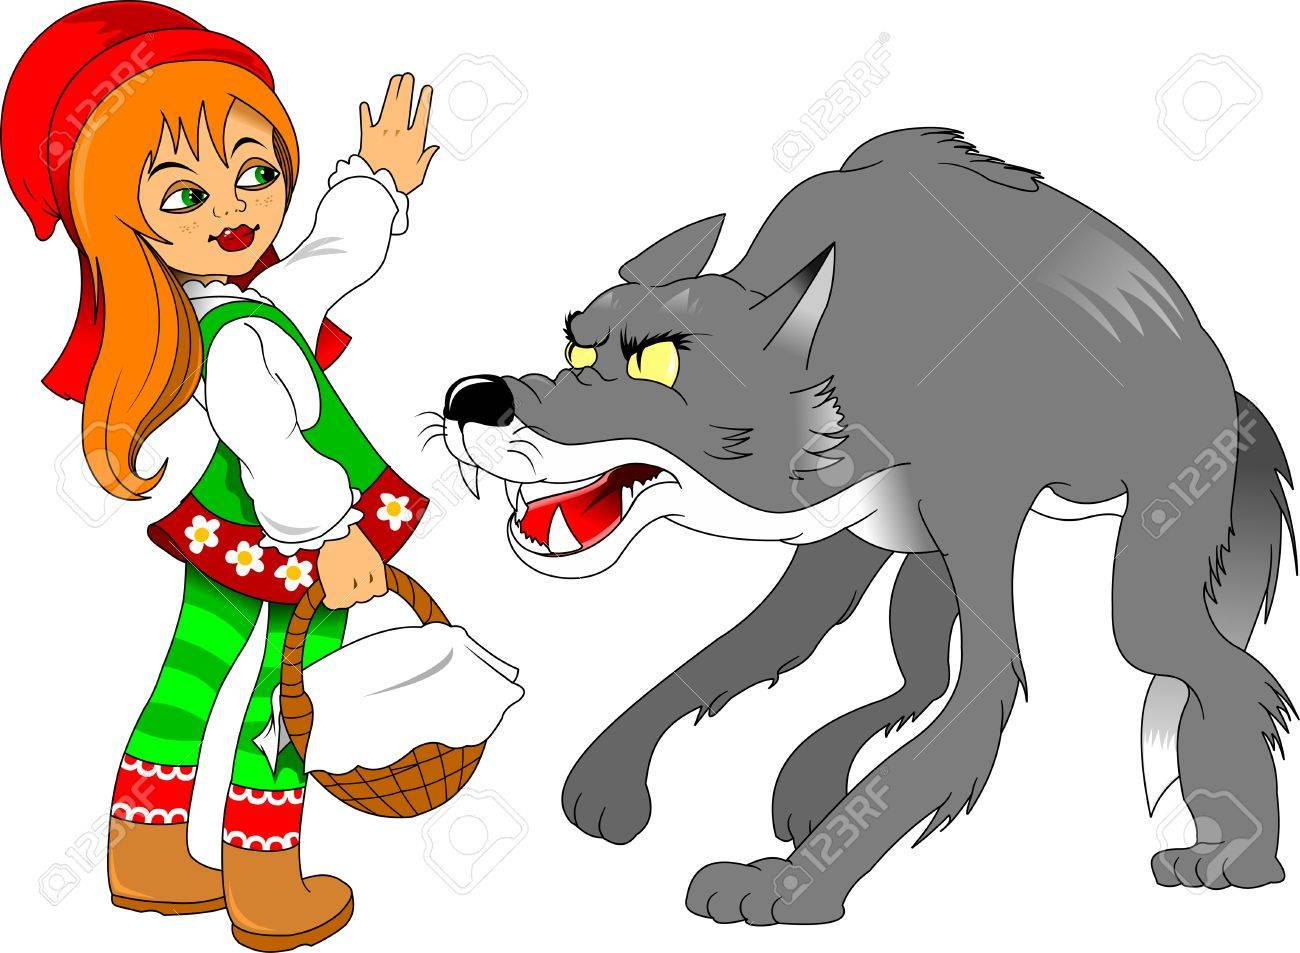 Little Red Riding Hood Meeting A Wolf Illustration Royalty Free